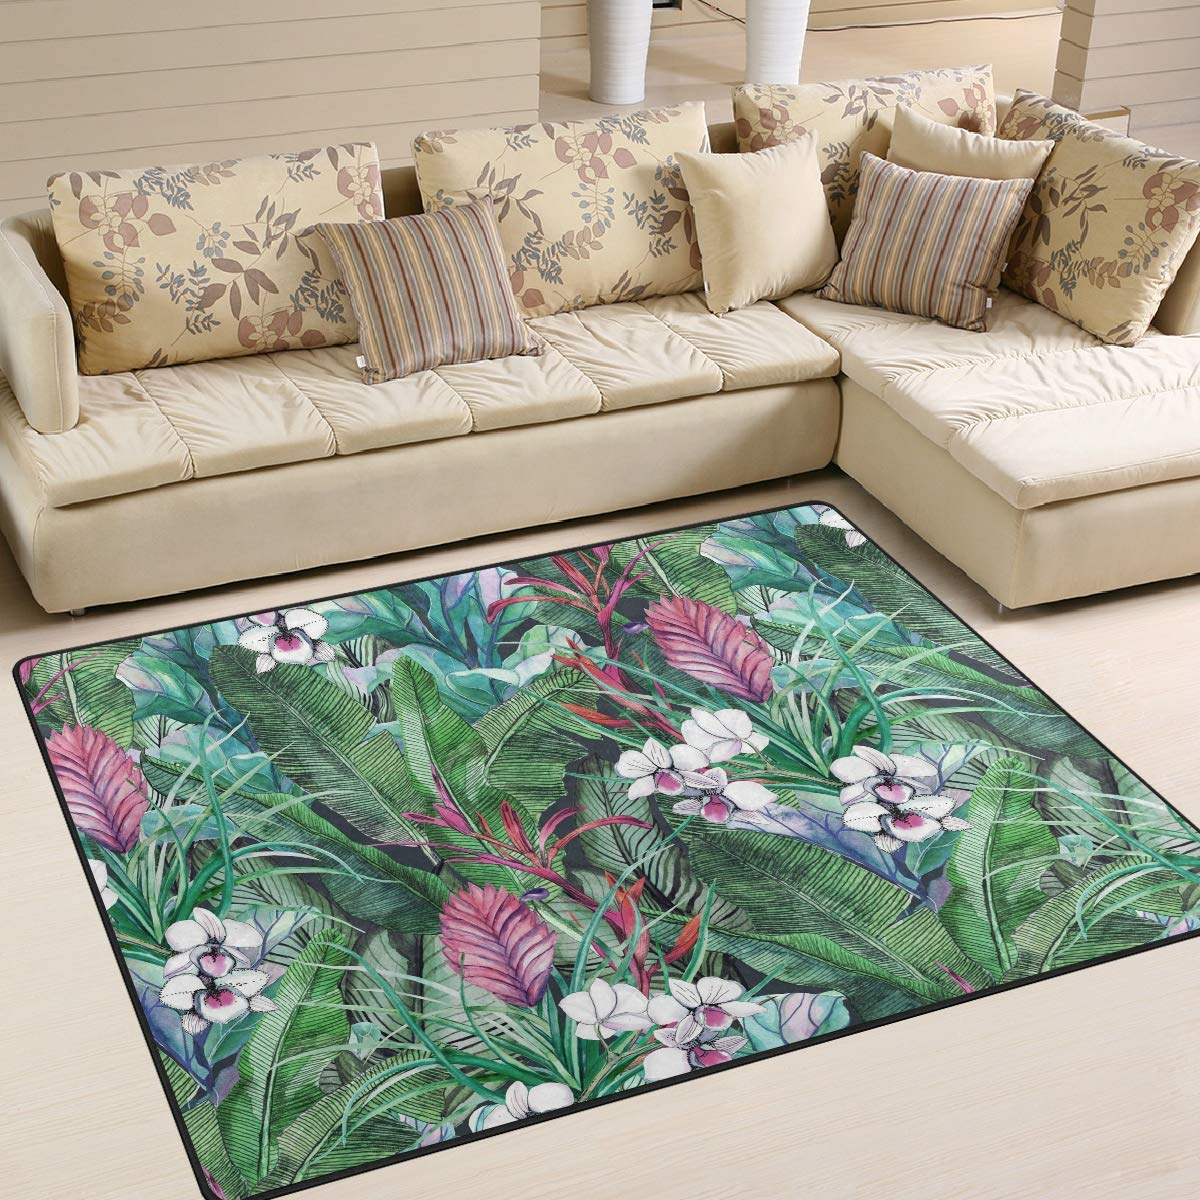 Floral Print Indoor//Outdoor Rug Purple E by design RFN485PU5-35 Vacation 3 x 5